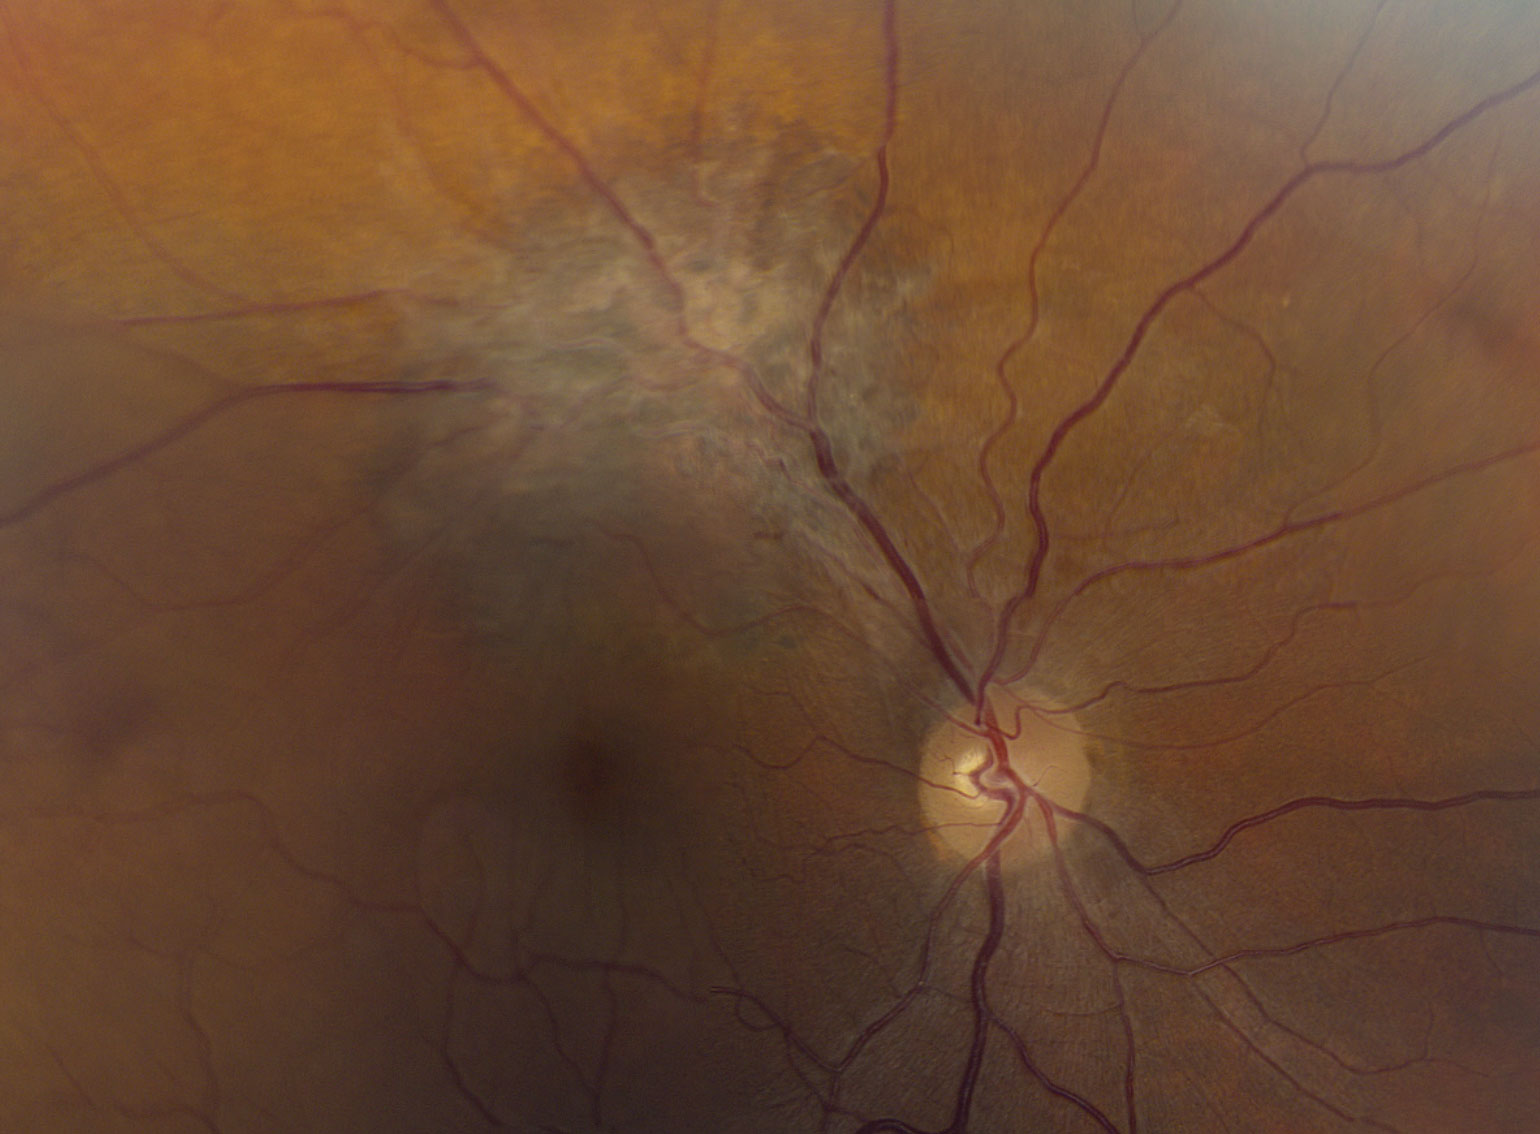 Fig. 1. A widefield view of the right eye of our patient.